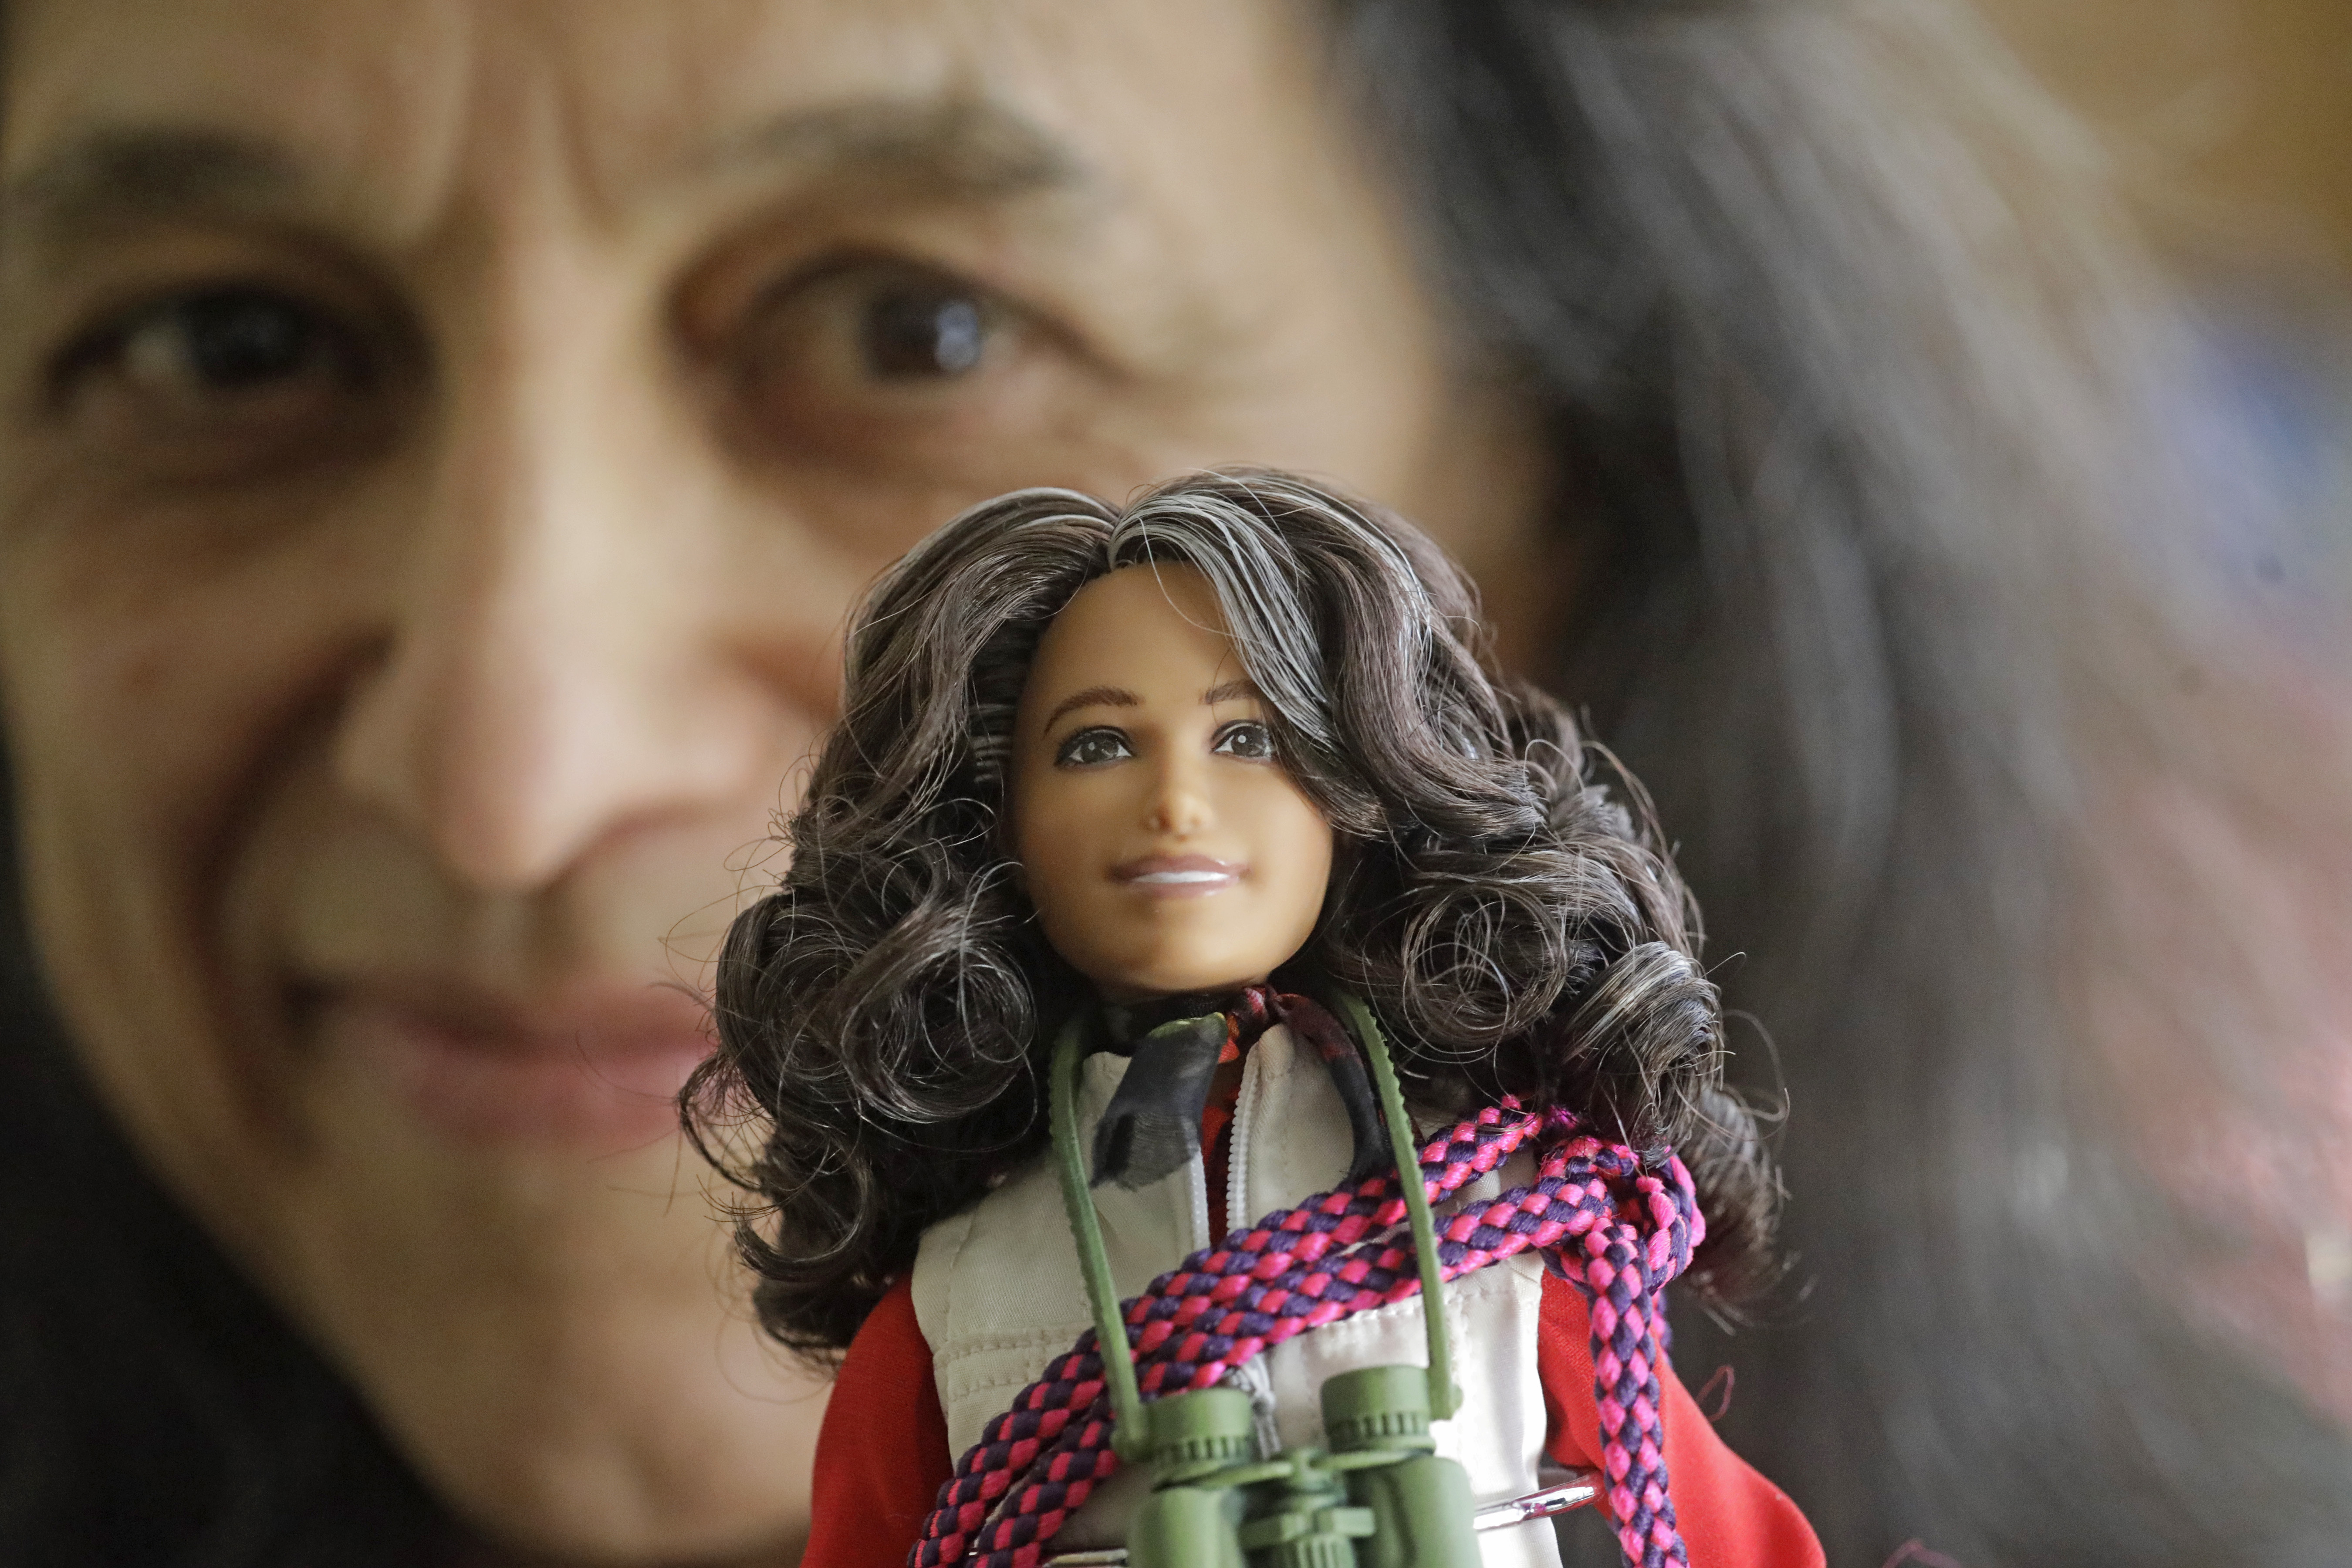 In this Dec. 3, 2019, photo, ecologist Nalini Nadkarni is shown in her lab on the University of Utah campus in Salt Lake City holding a Barbie created to look like her when she's climbing into the treetops to study the rainforest canopy.